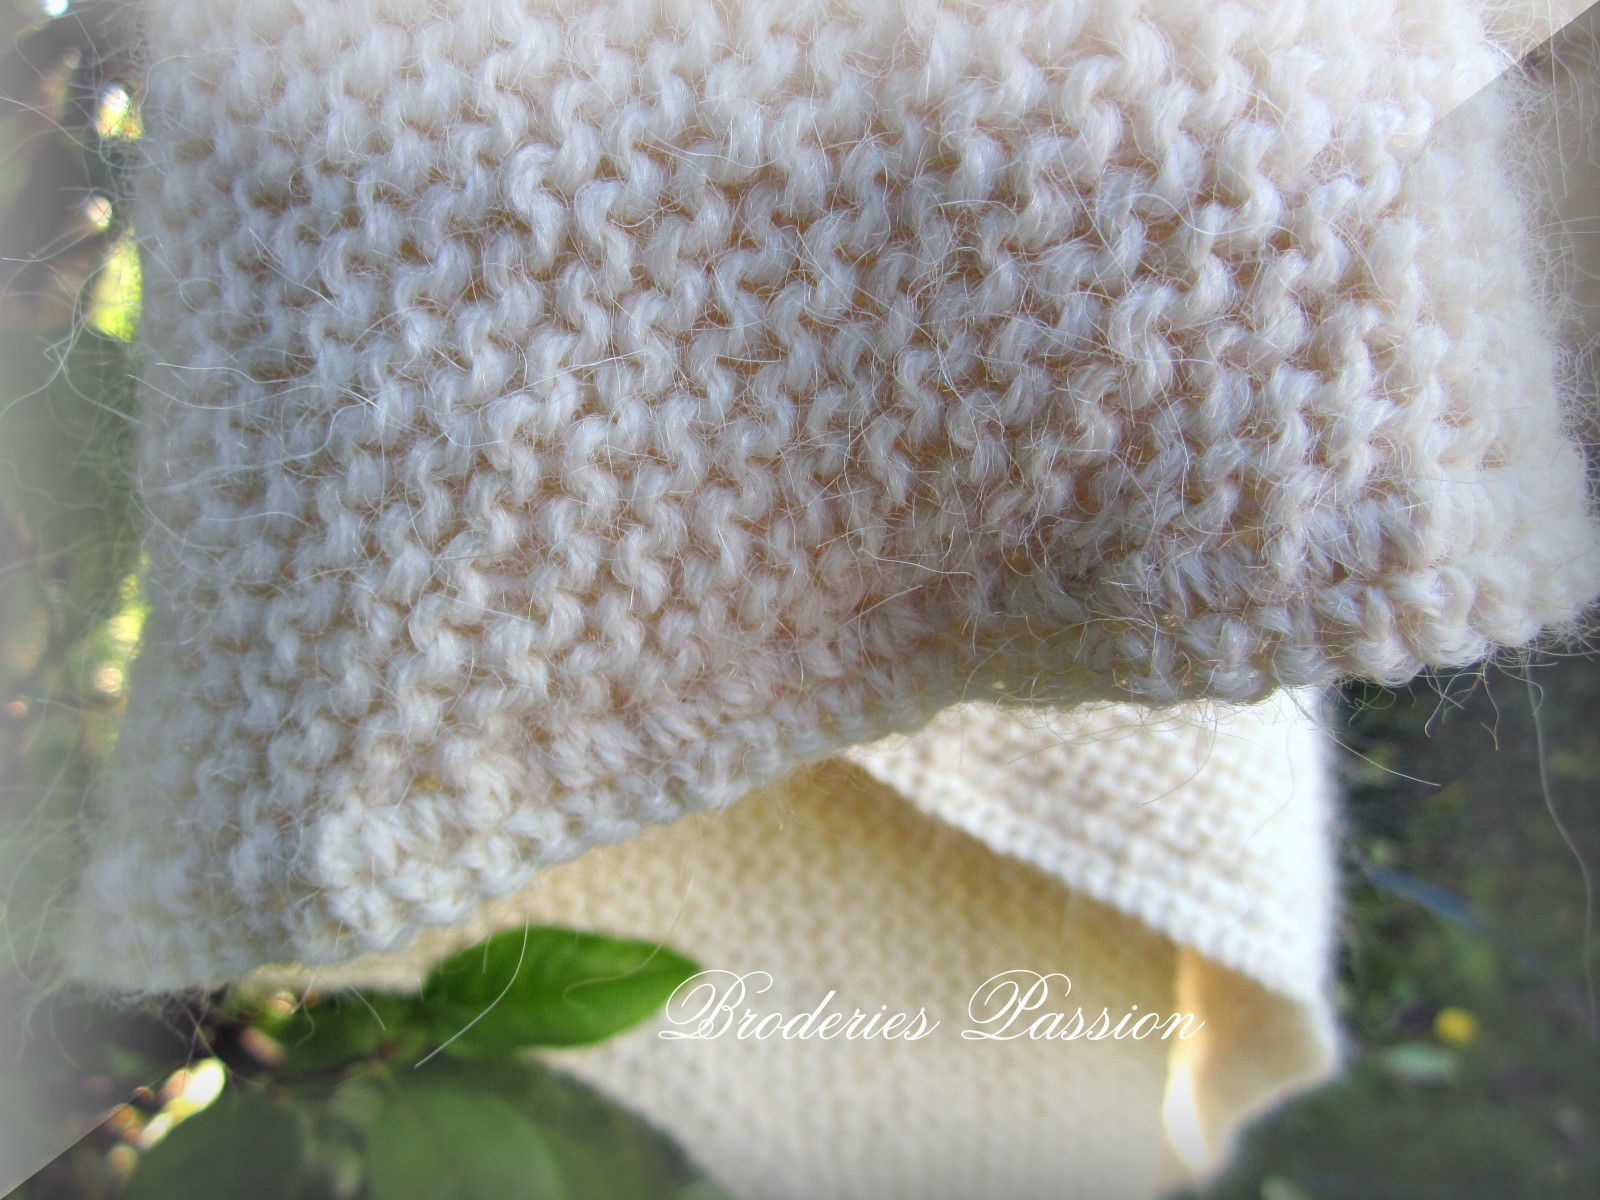 Tricot crochet broderies passion martine290 - Broderie sur tricot point mousse ...